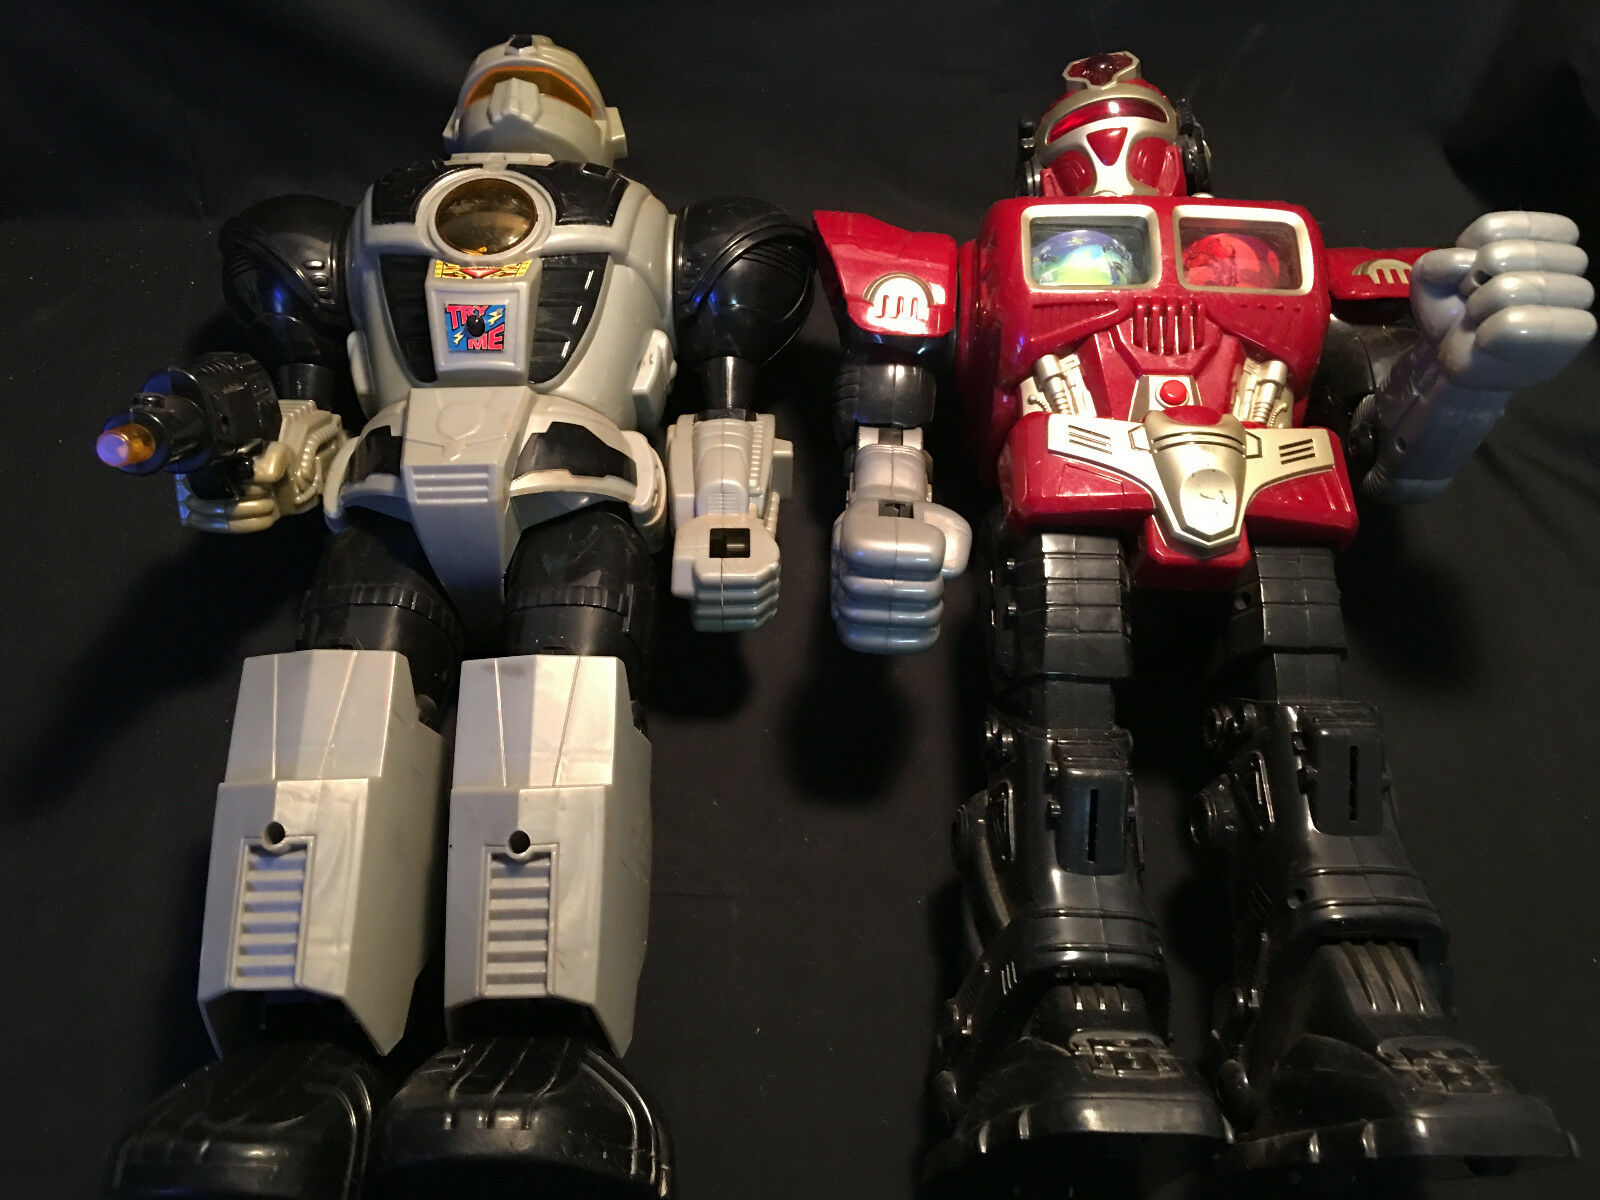 Red And Grey Action Figure Robot  Transformers Look-A-Like  Happy Kid Group